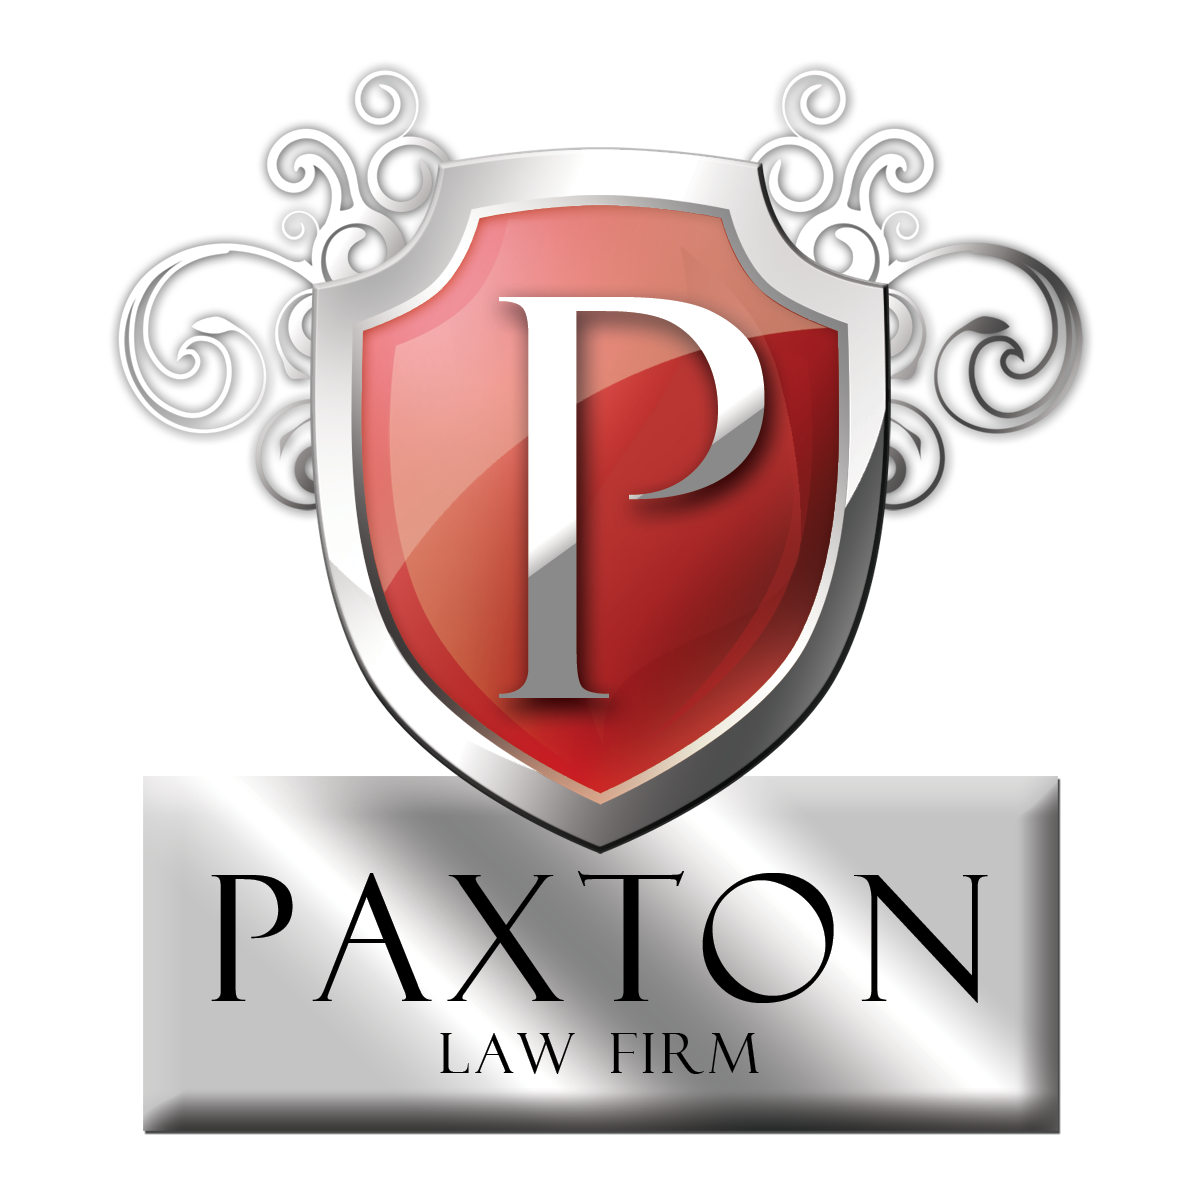 Paxton Law Firm - ad image